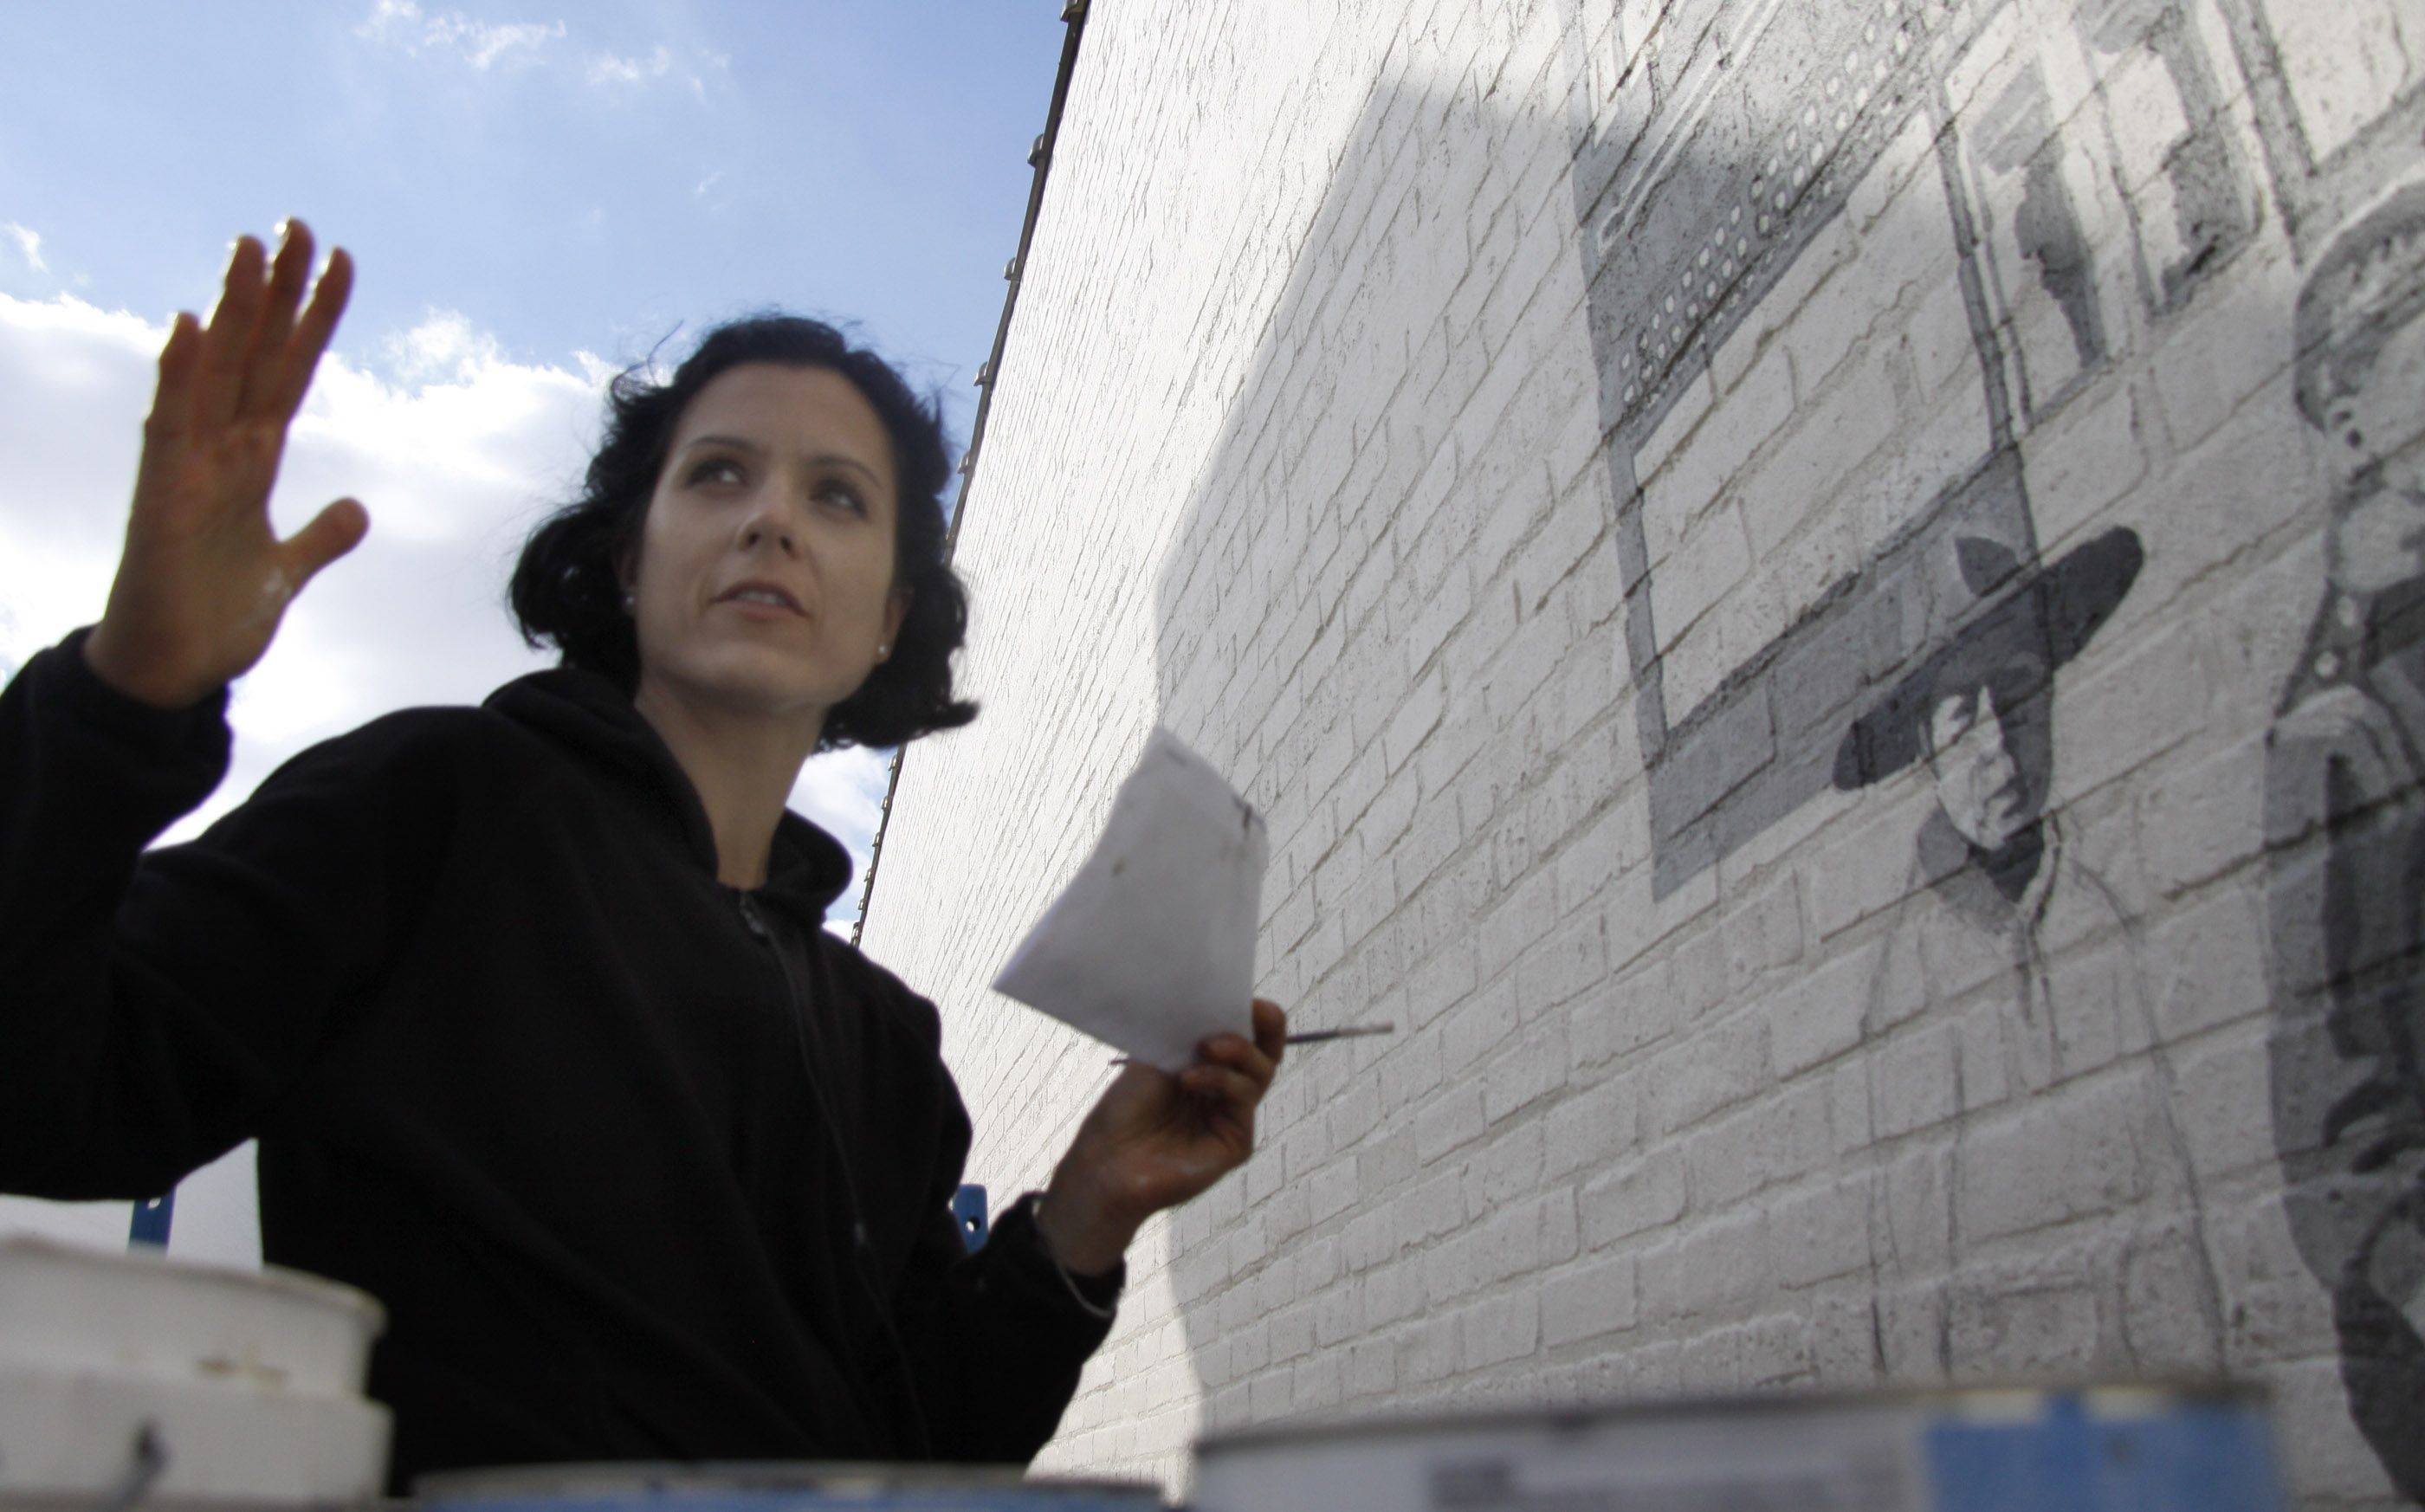 Adela Vystejnova Gardner began painting her mural in downtown Naperville in October and worked through to the winter to finish. She'll begin work on the second piece on Monday. She says it's the first time she's ever done a mural outside.